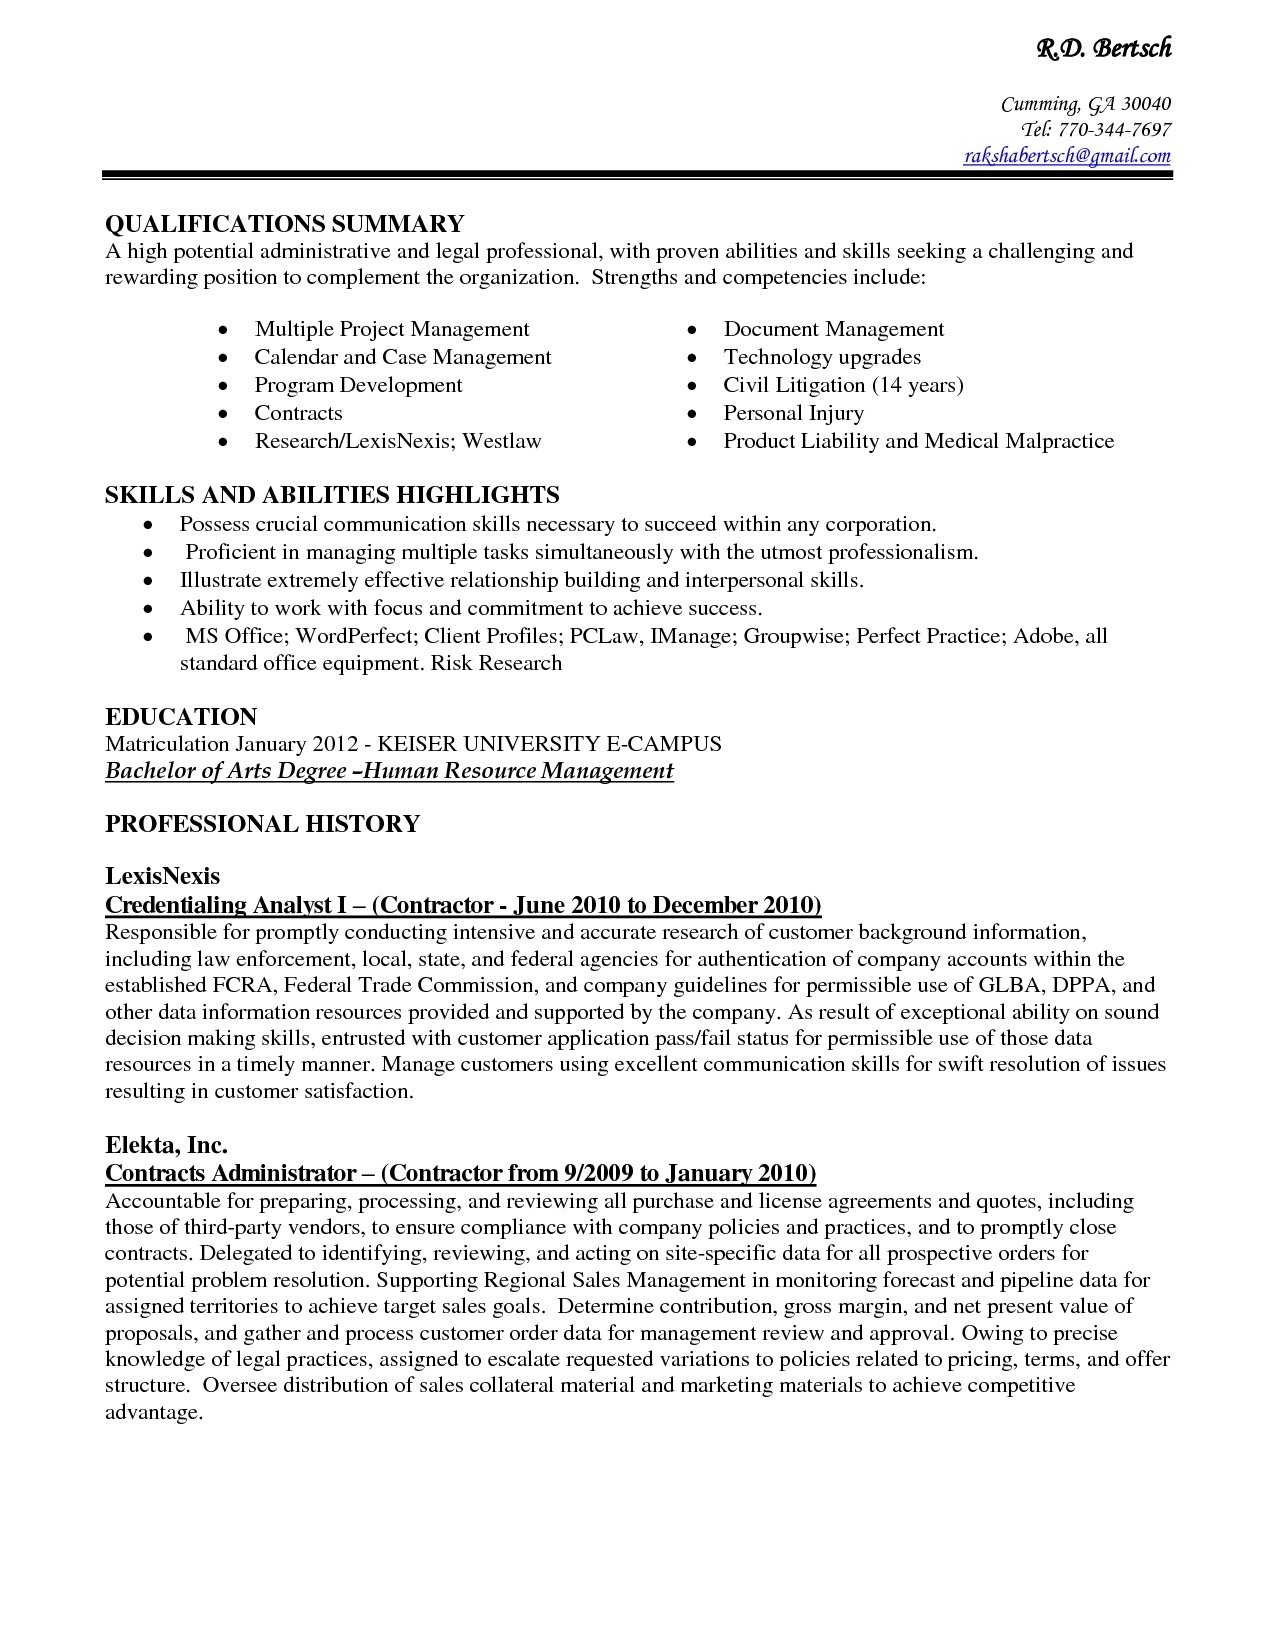 resume for office assistant examples example qualifications summary administrative with strenghts and - Office Assistant Resume Templates